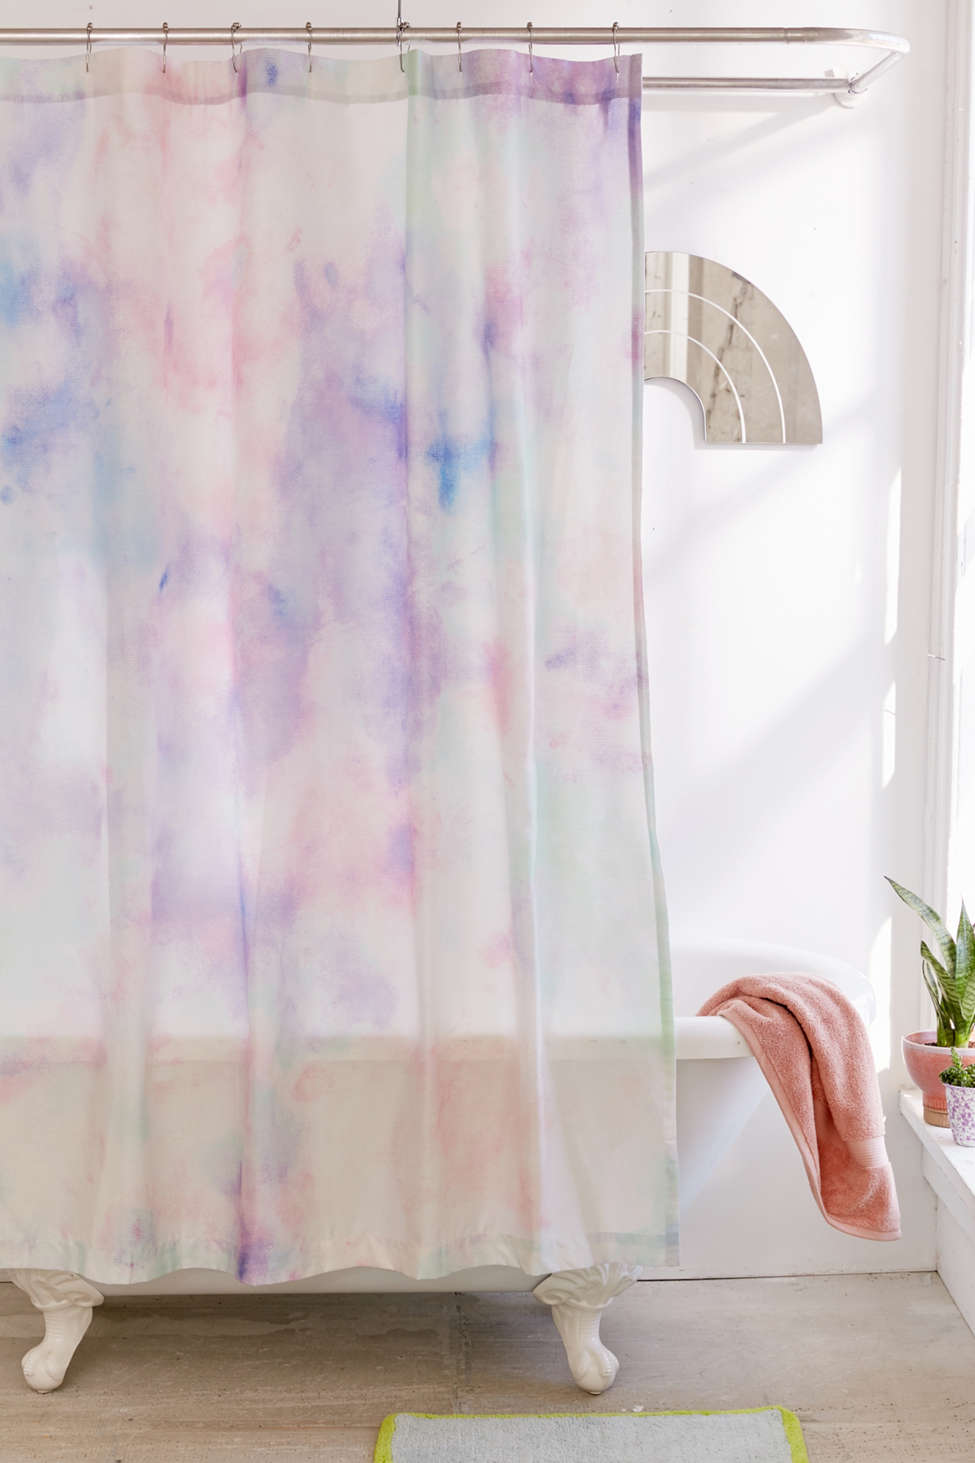 Slide View: 1: Rainbow Dye Shower Curtain